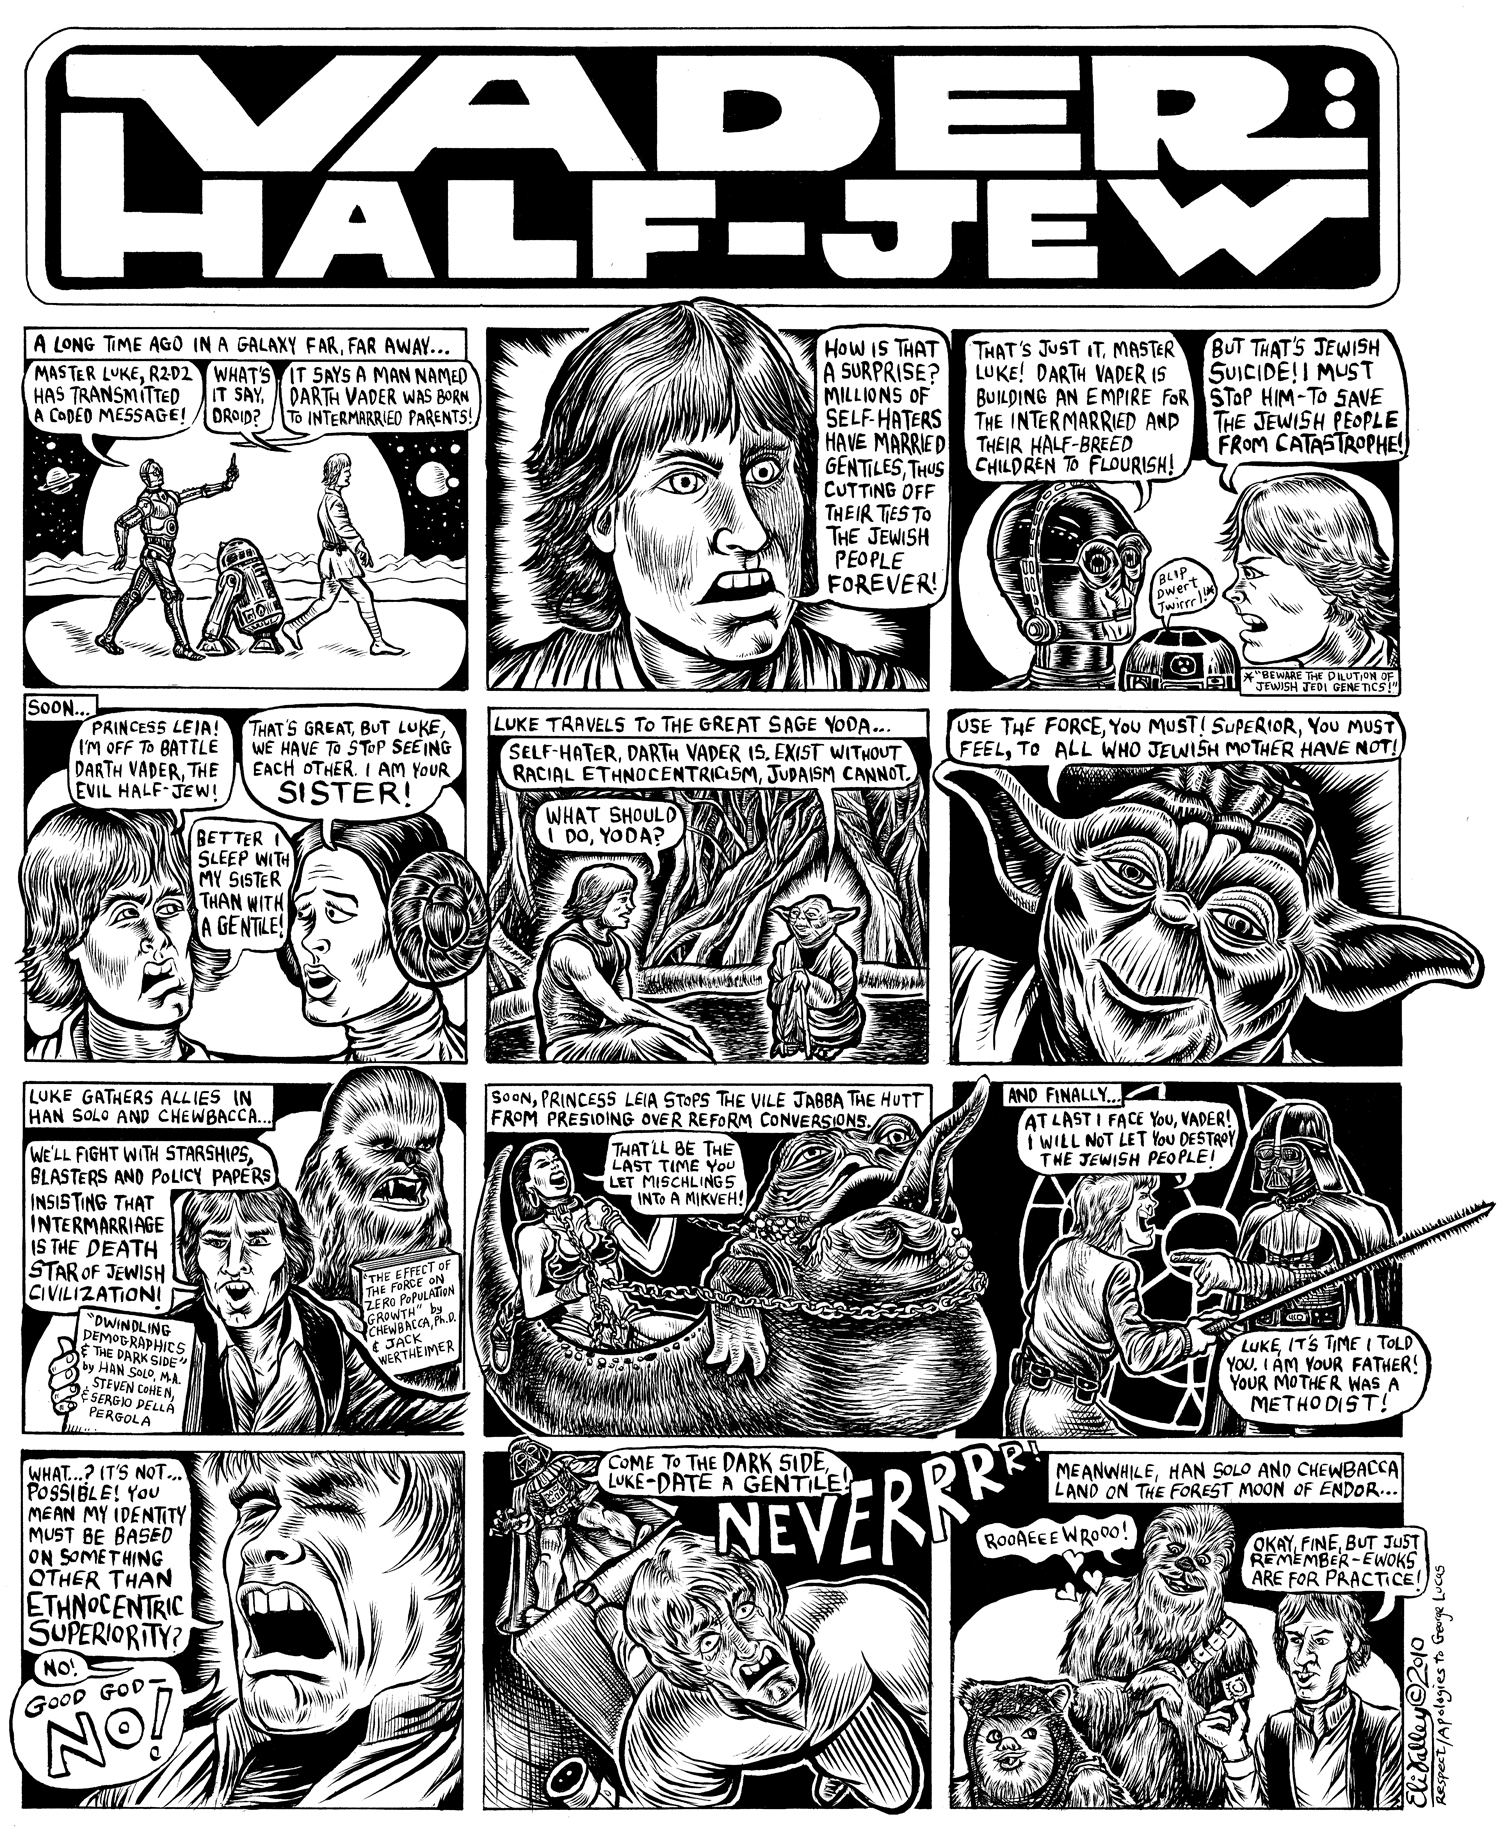 Vader: Half-Jew: Intermarriage. Forward, 3/25/10